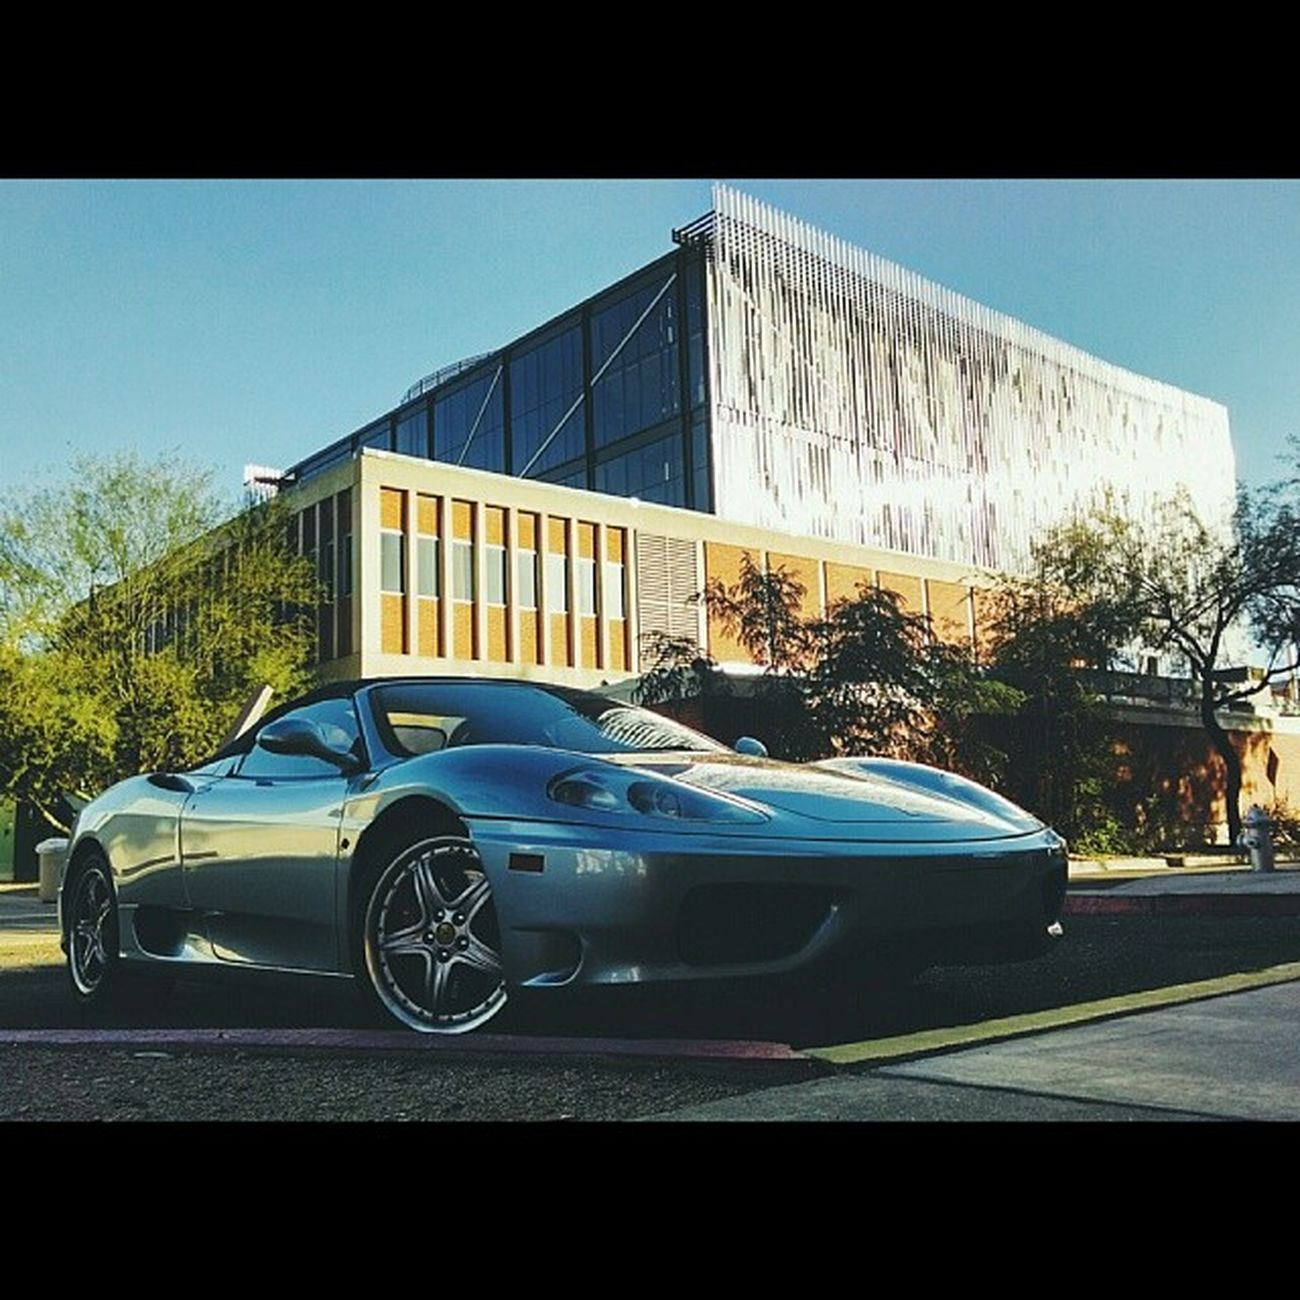 Lately, I've been, I've been losing sleep... Ferrari VSCO